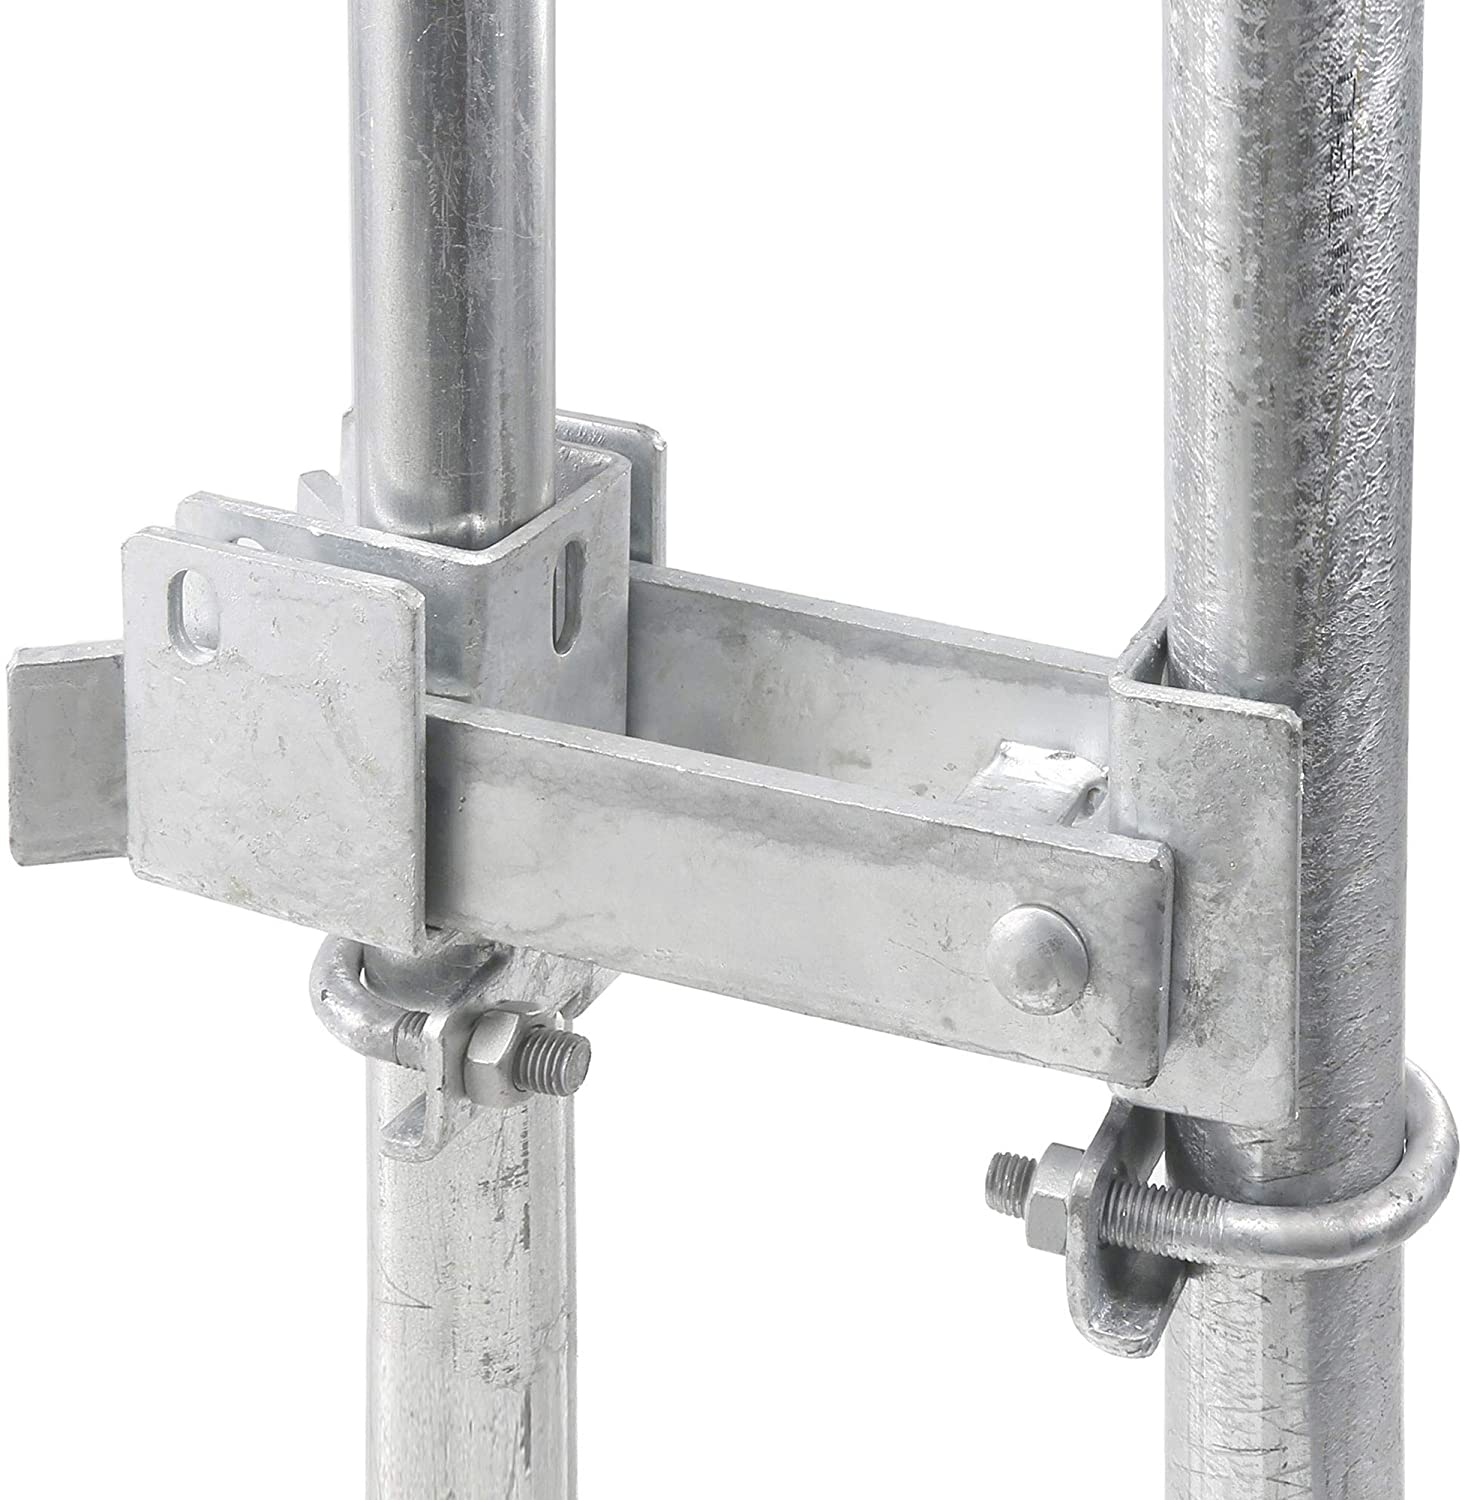 Chain Link Double Gate Latch for 1-3//8 Gate Frames Latches Two Gates Together Without The Need of a Drop Rod Chain Link Residential Strong Arm Double Gate Latch